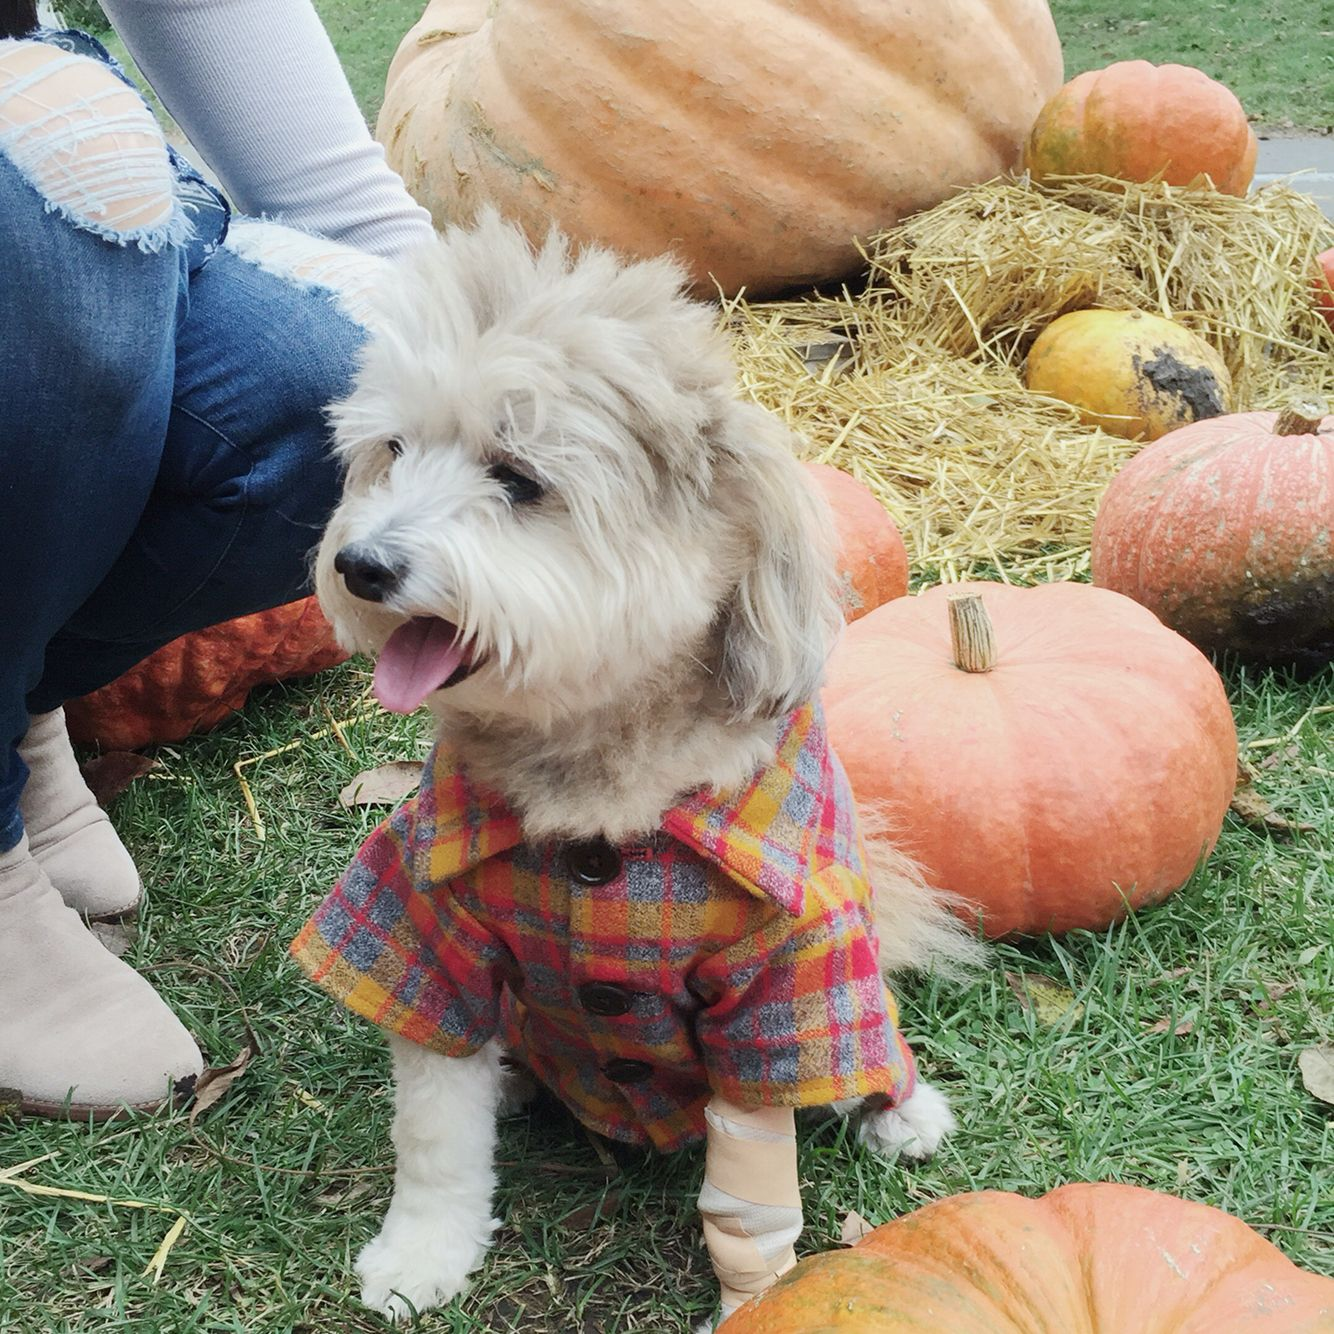 Flannel shirts for dogs  Fall Pumpkin Patch  Dog Plaid Flannel Shirt by Dog Threads